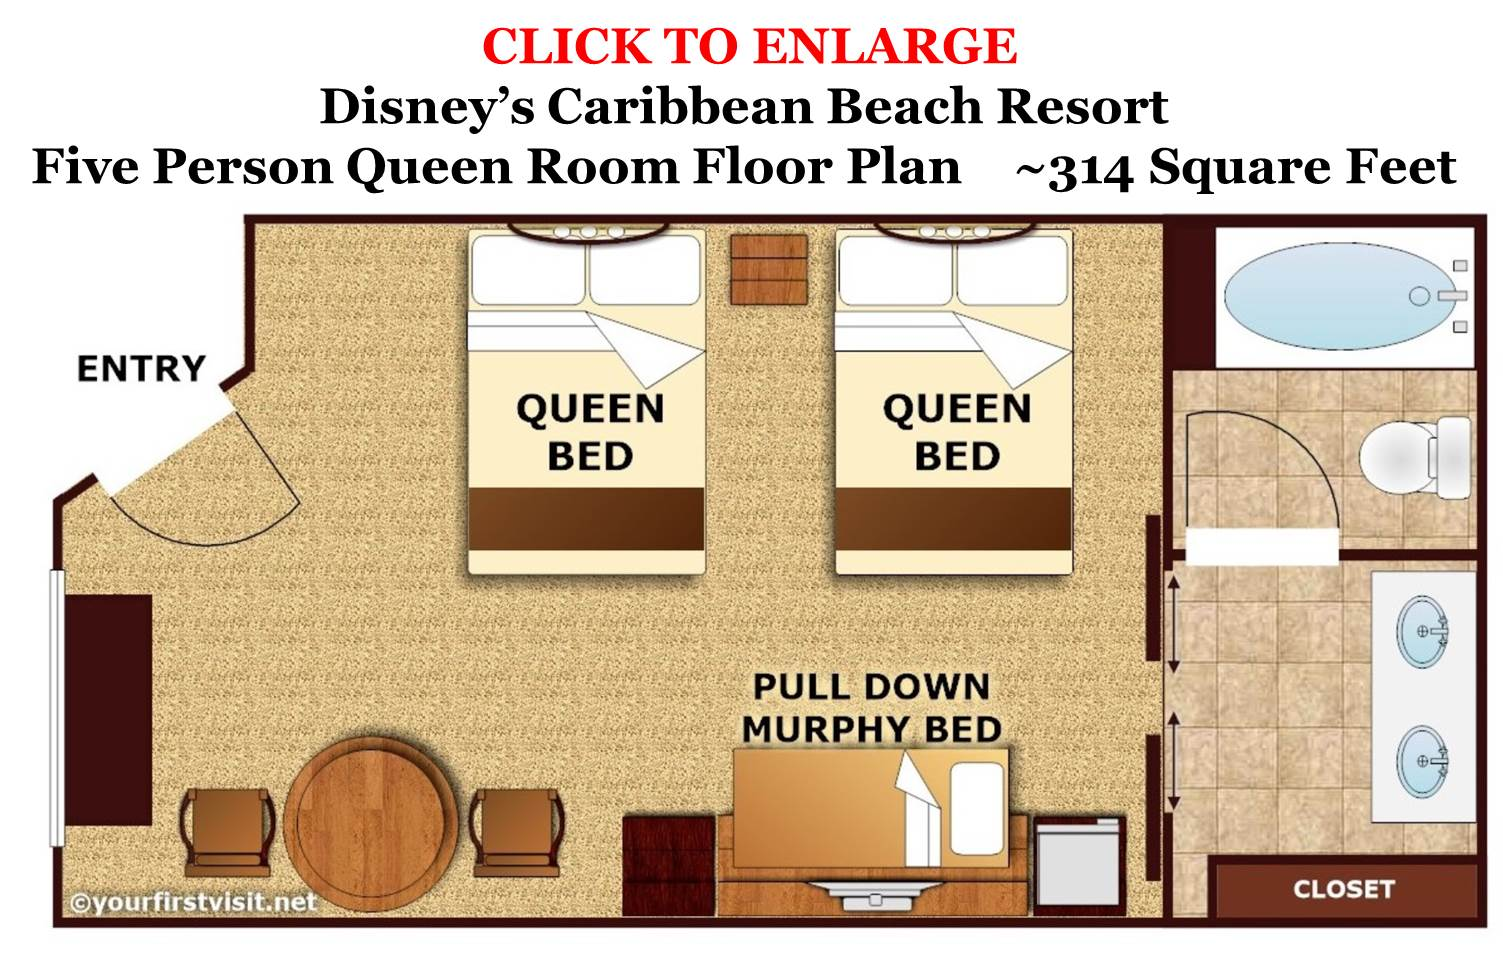 Five Person Queen Room Floor Plan Disney S Caribbean Beach Resort From Yourfirstvisit